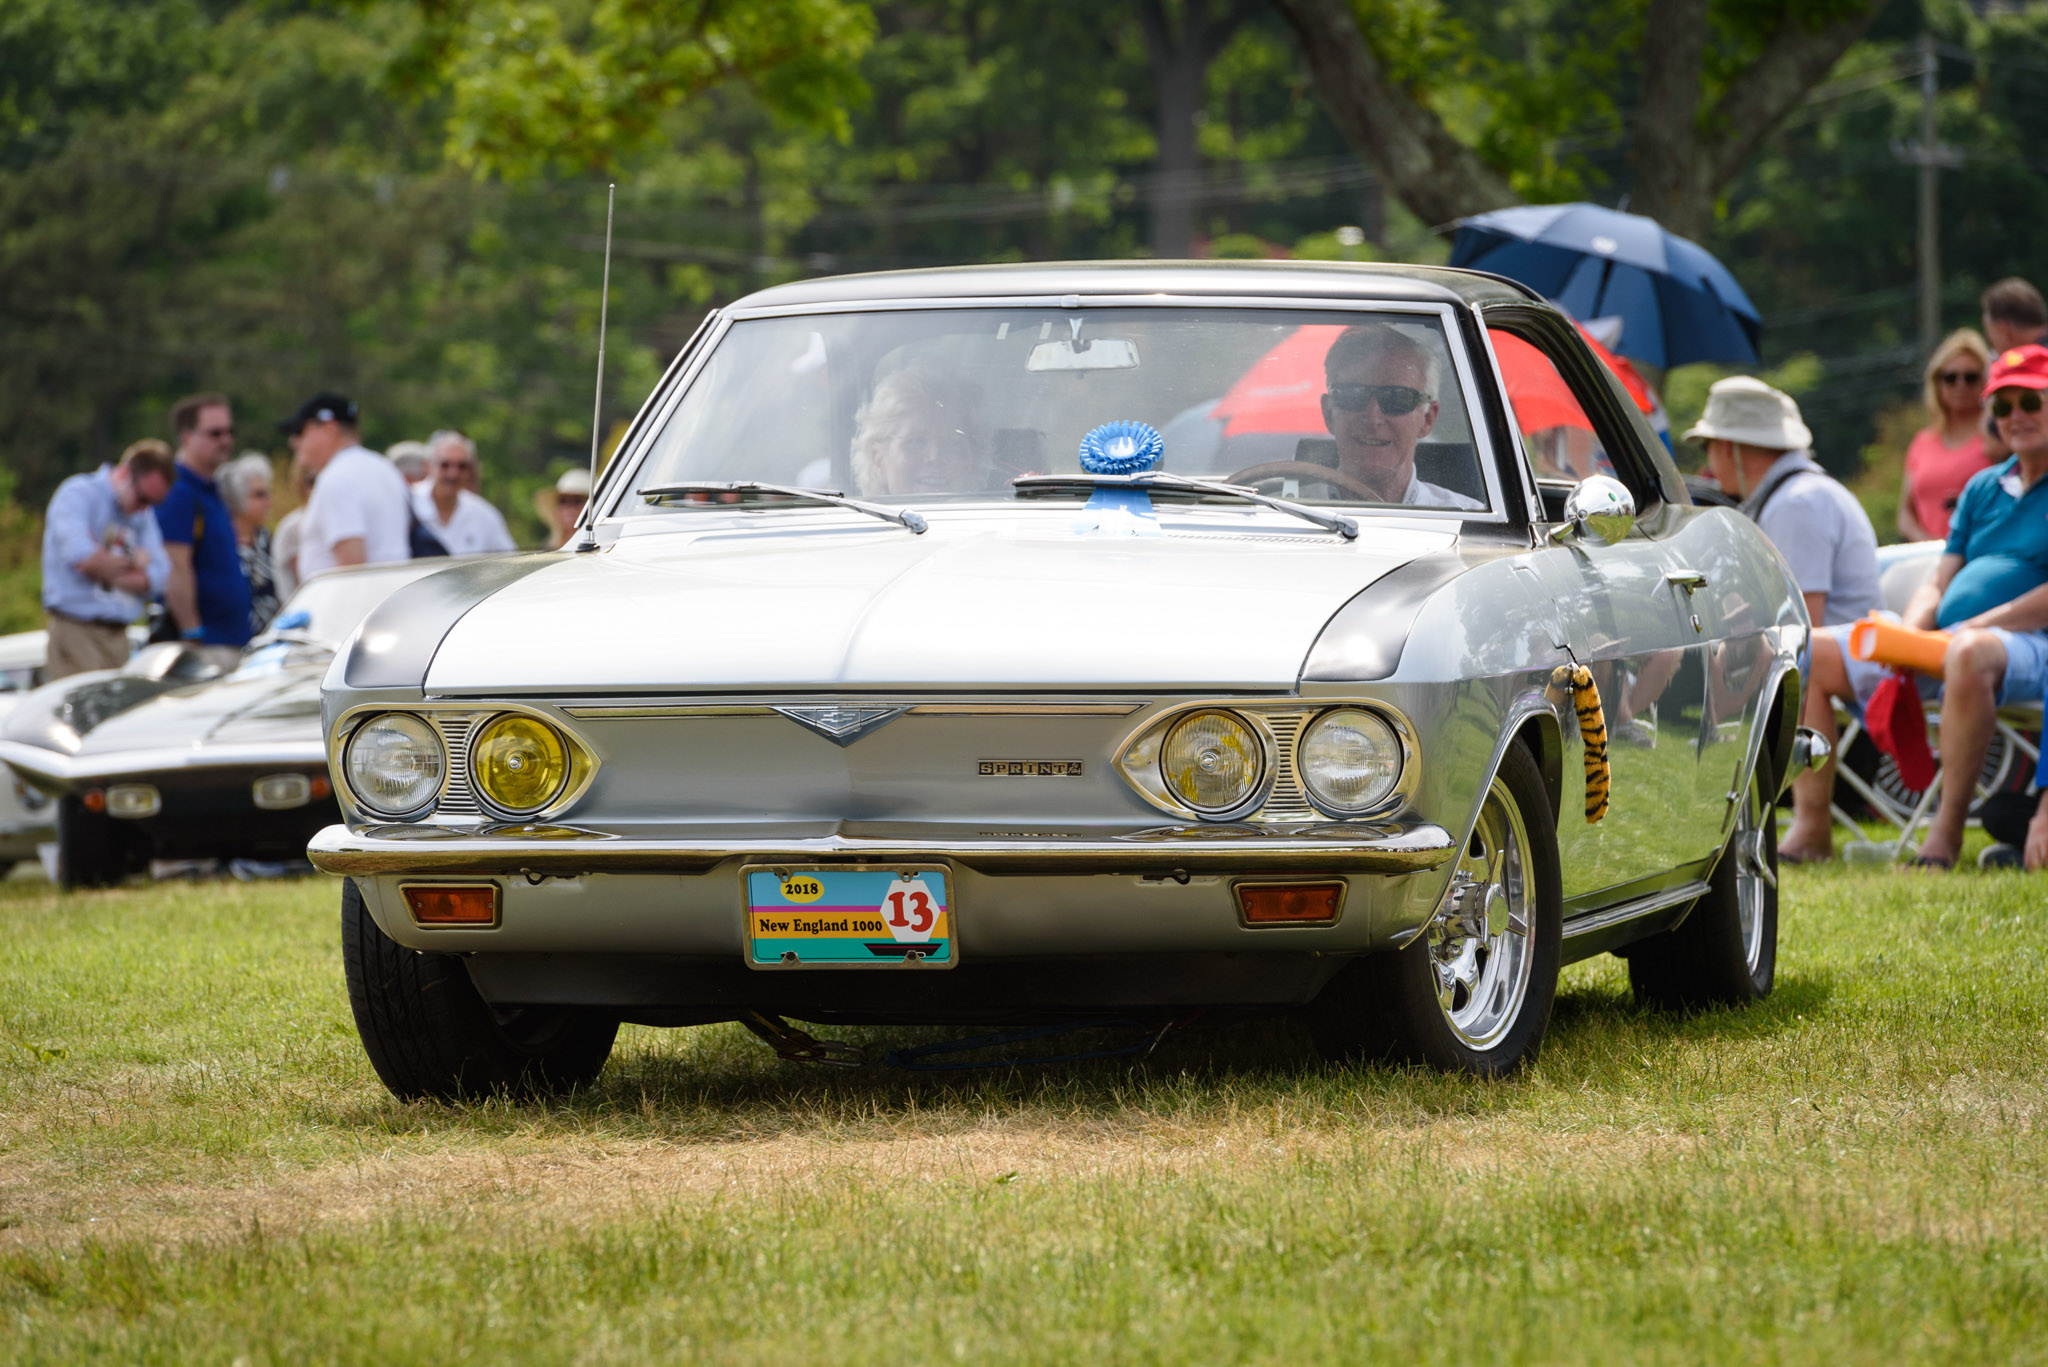 1966 Corvair Corsa Fitch Sprint front 3/4